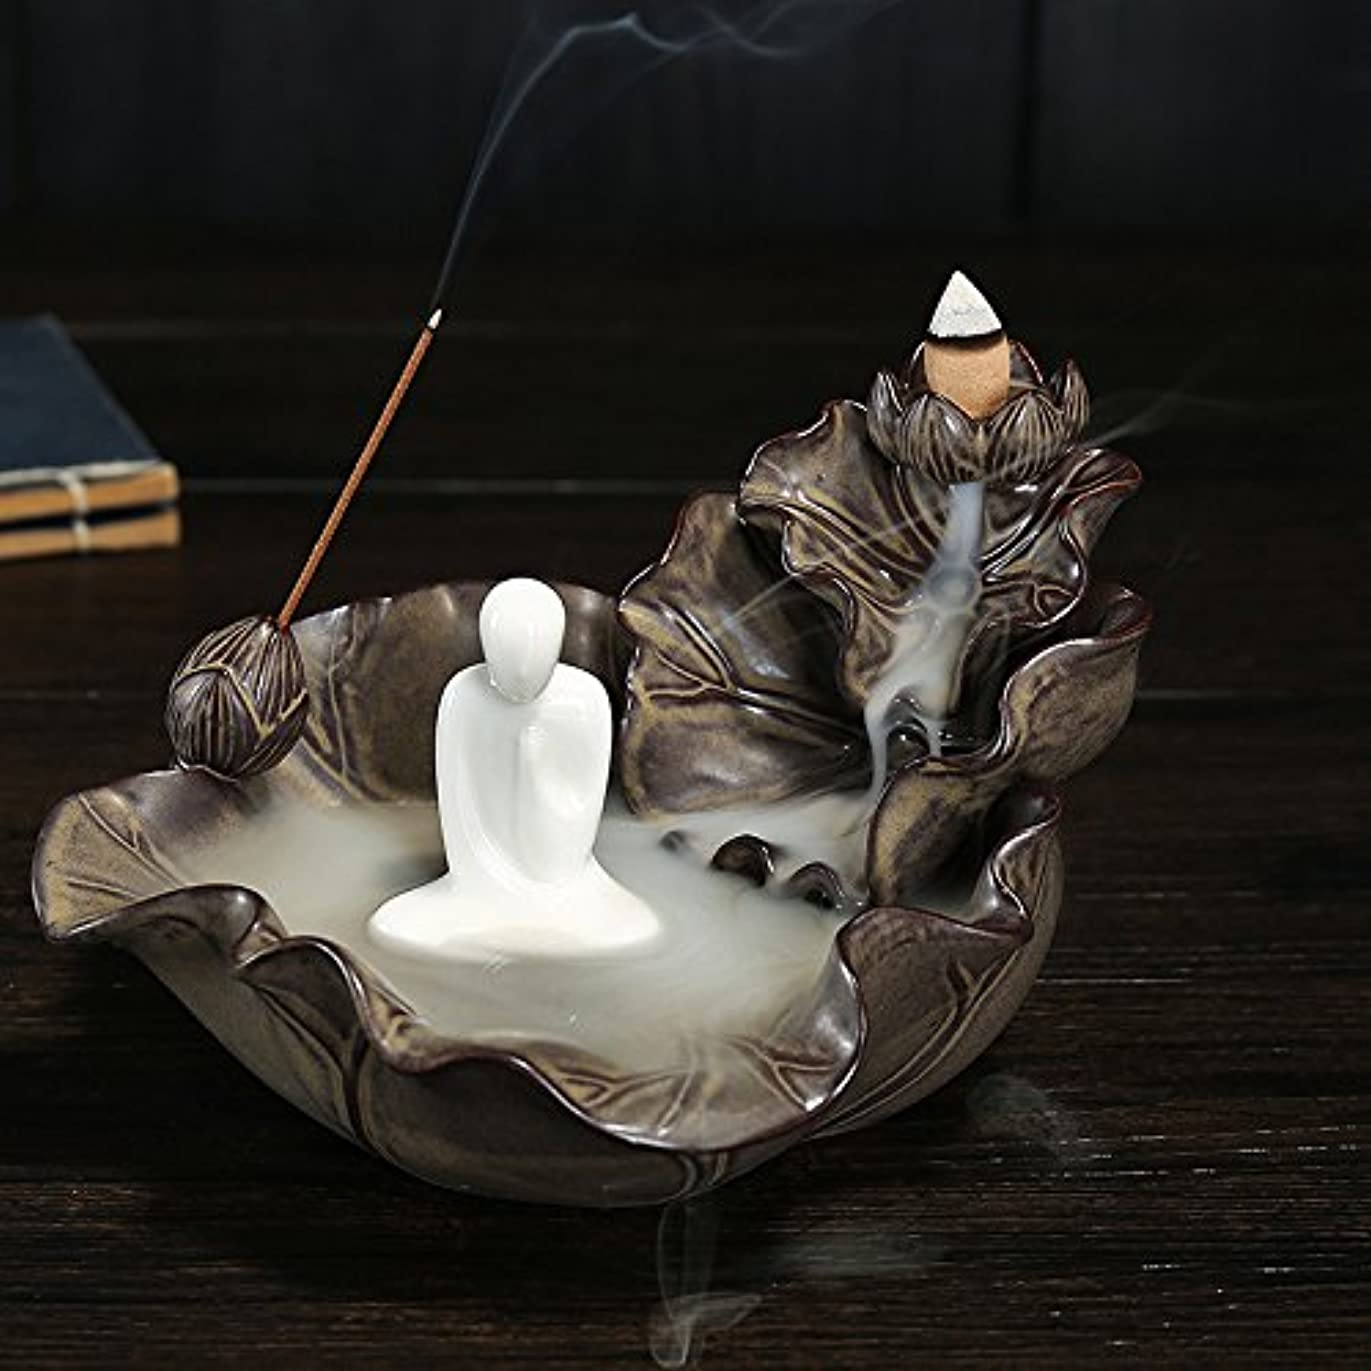 へこみオピエートバズ逆流香炉、香ホルダー、Monk Incense Burner Ceramics Incense Holder with 10pcs Backflow Incense Cones One Size ブラウン 125025